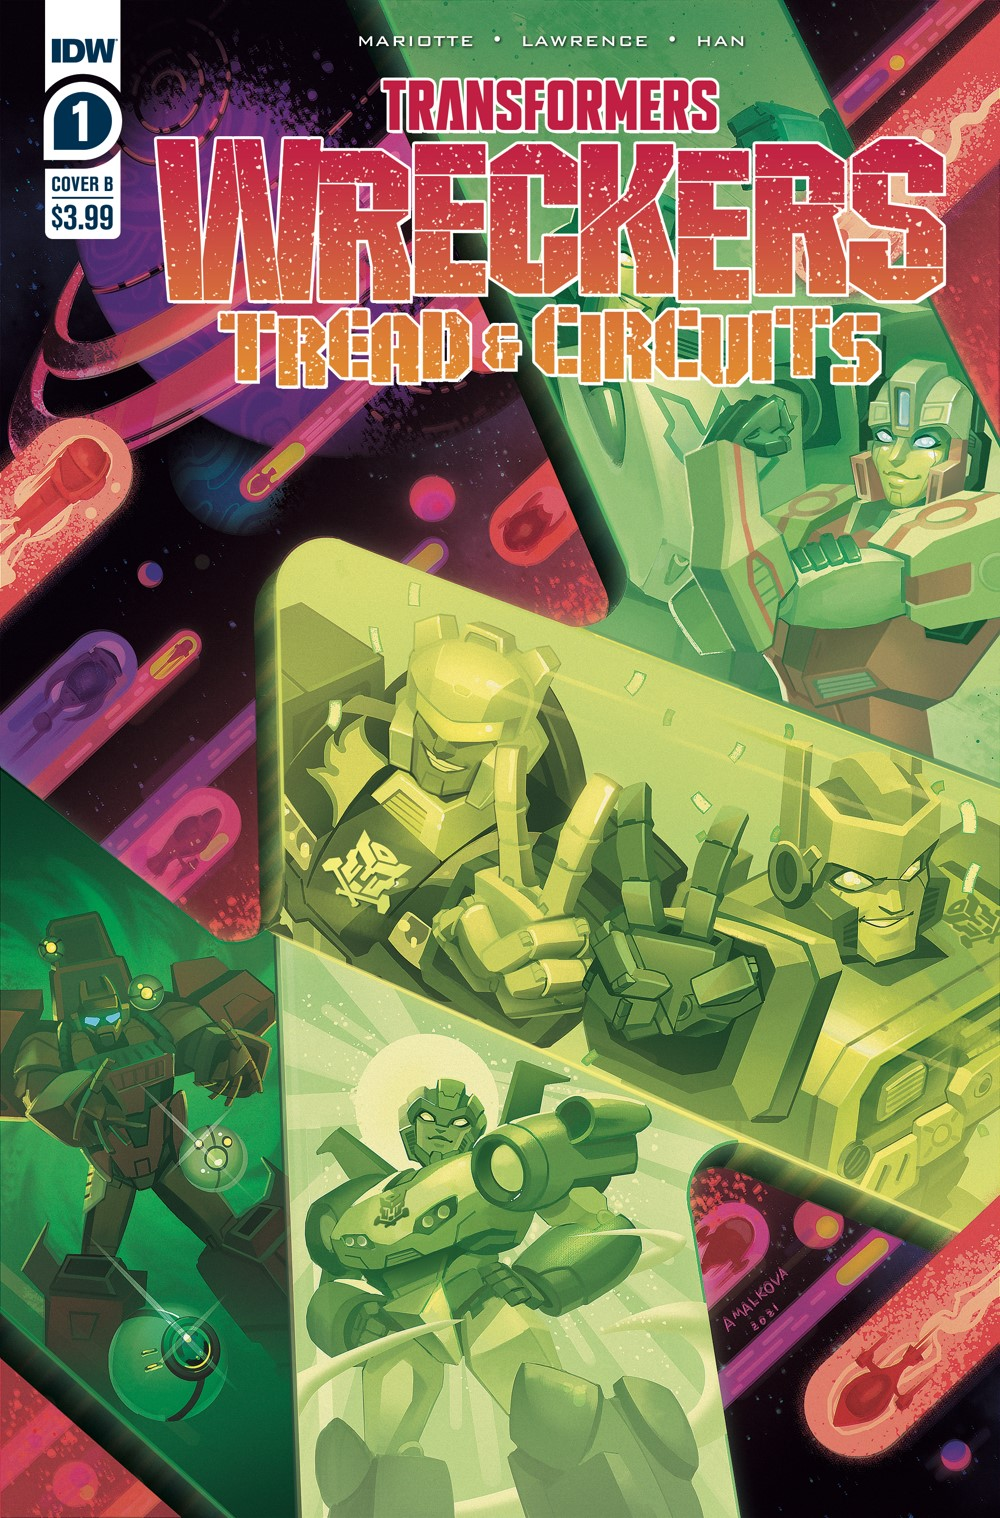 TF-Wreckers-TnC01_cvrB ComicList Previews: TRANSFORMERS WRECKERS TREAD AND CIRCUITS #1 (OF 4)